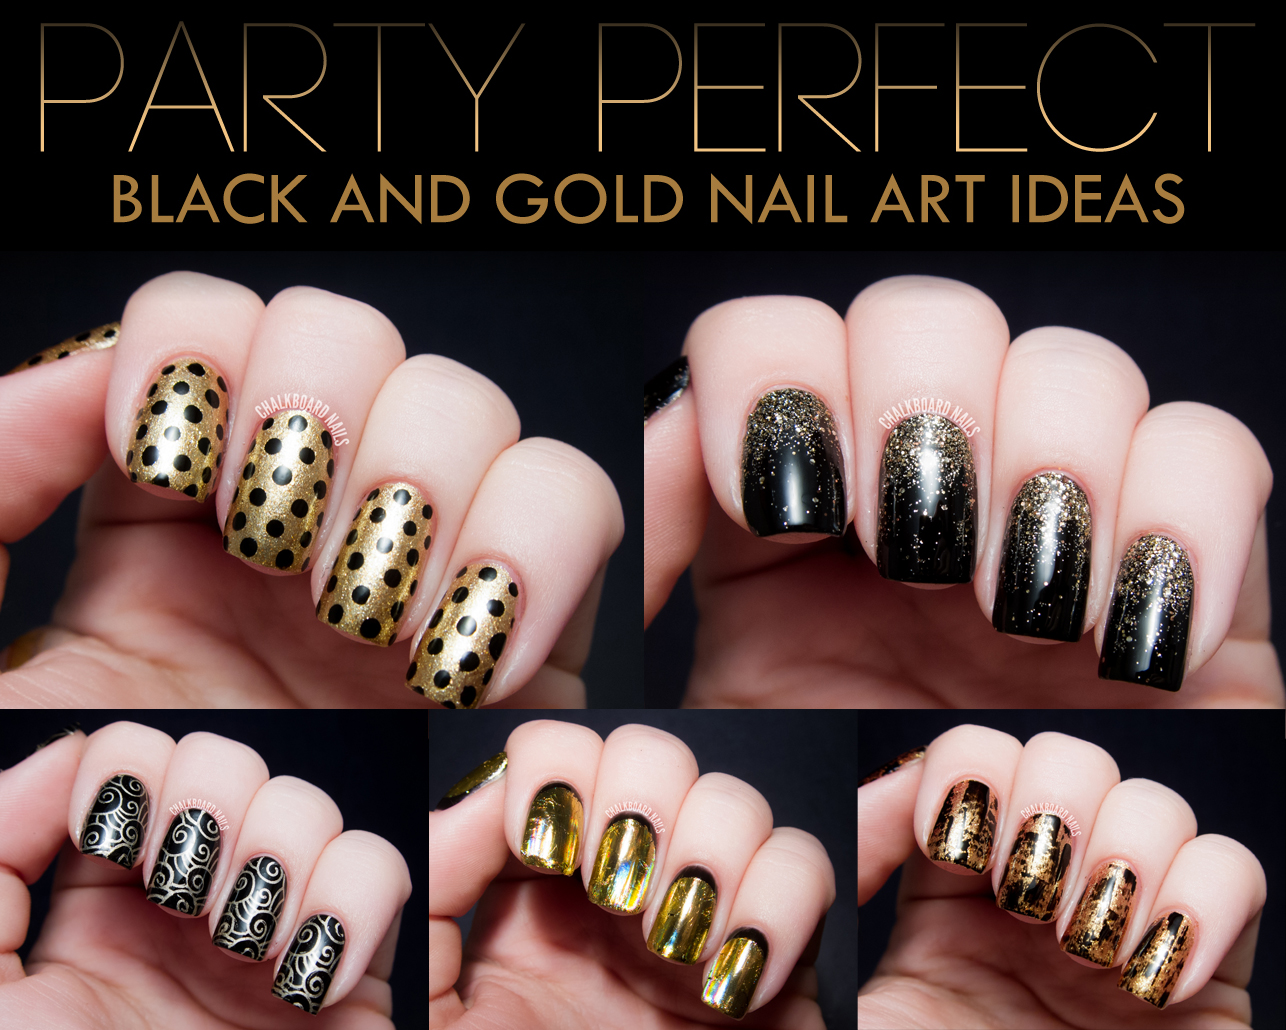 I Have Been Wearing A Lot Of Black And Gold Manicures Lately Thought It Would Be The Perfect Opportunity To Highlight One My Favorite Party